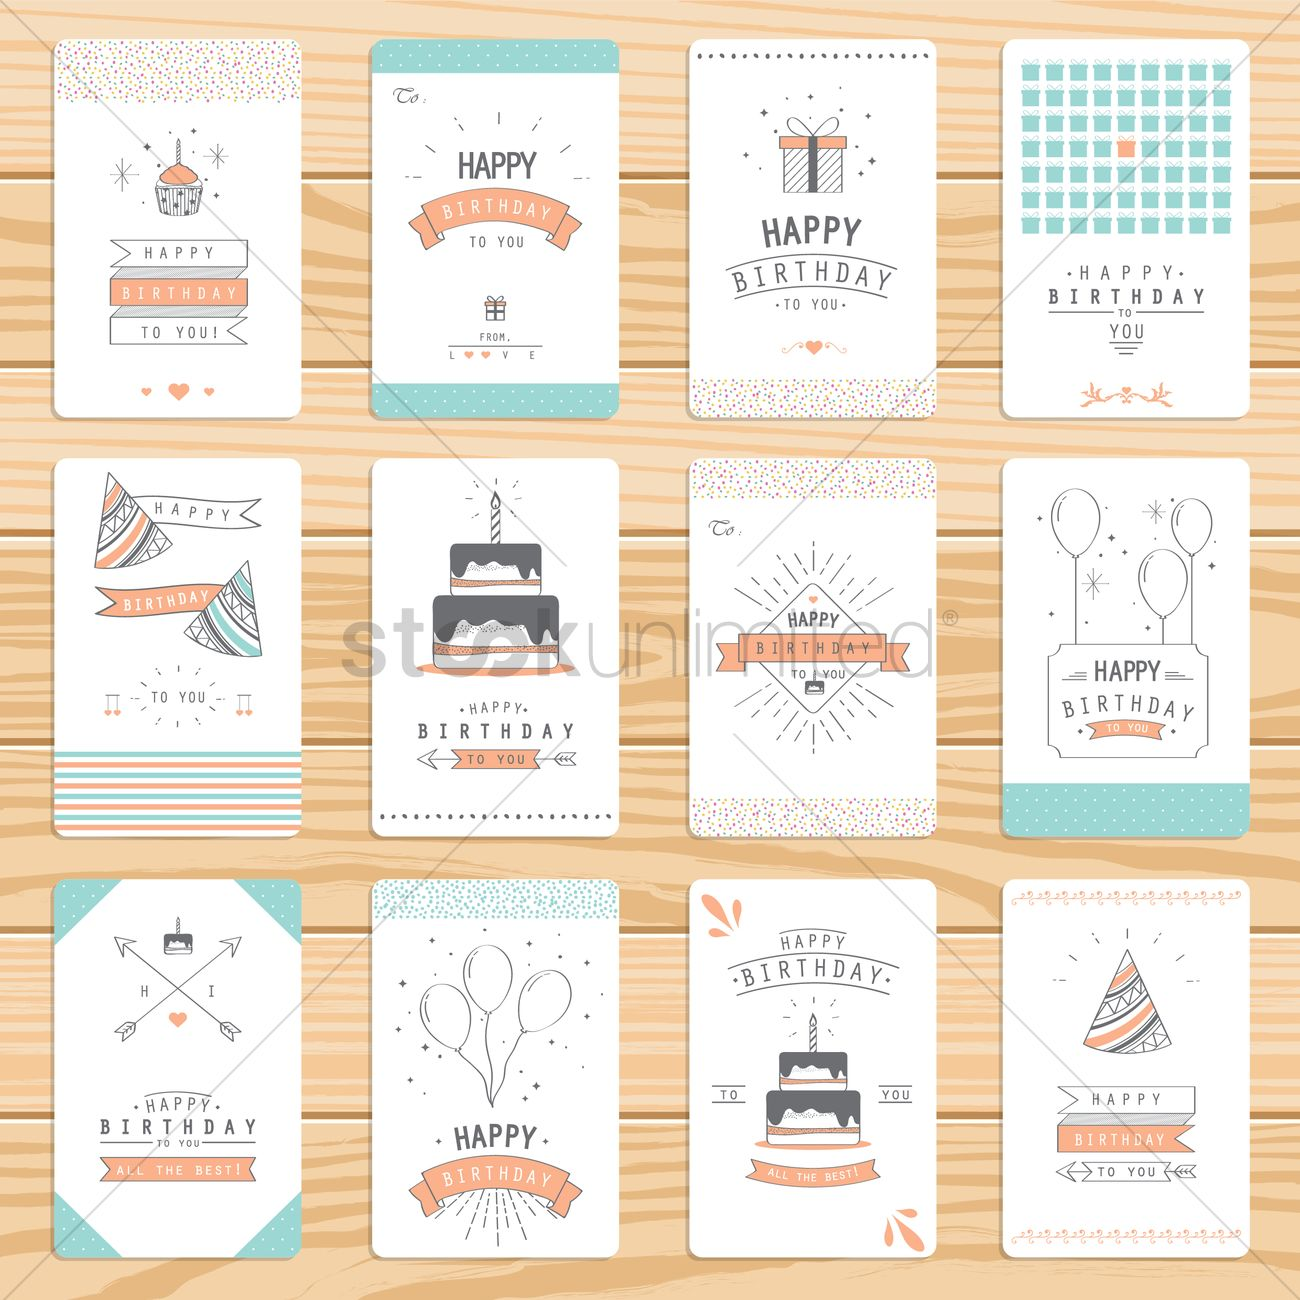 Set Of Birthday Greeting Cards Vector Image 1828473 Stockunlimited